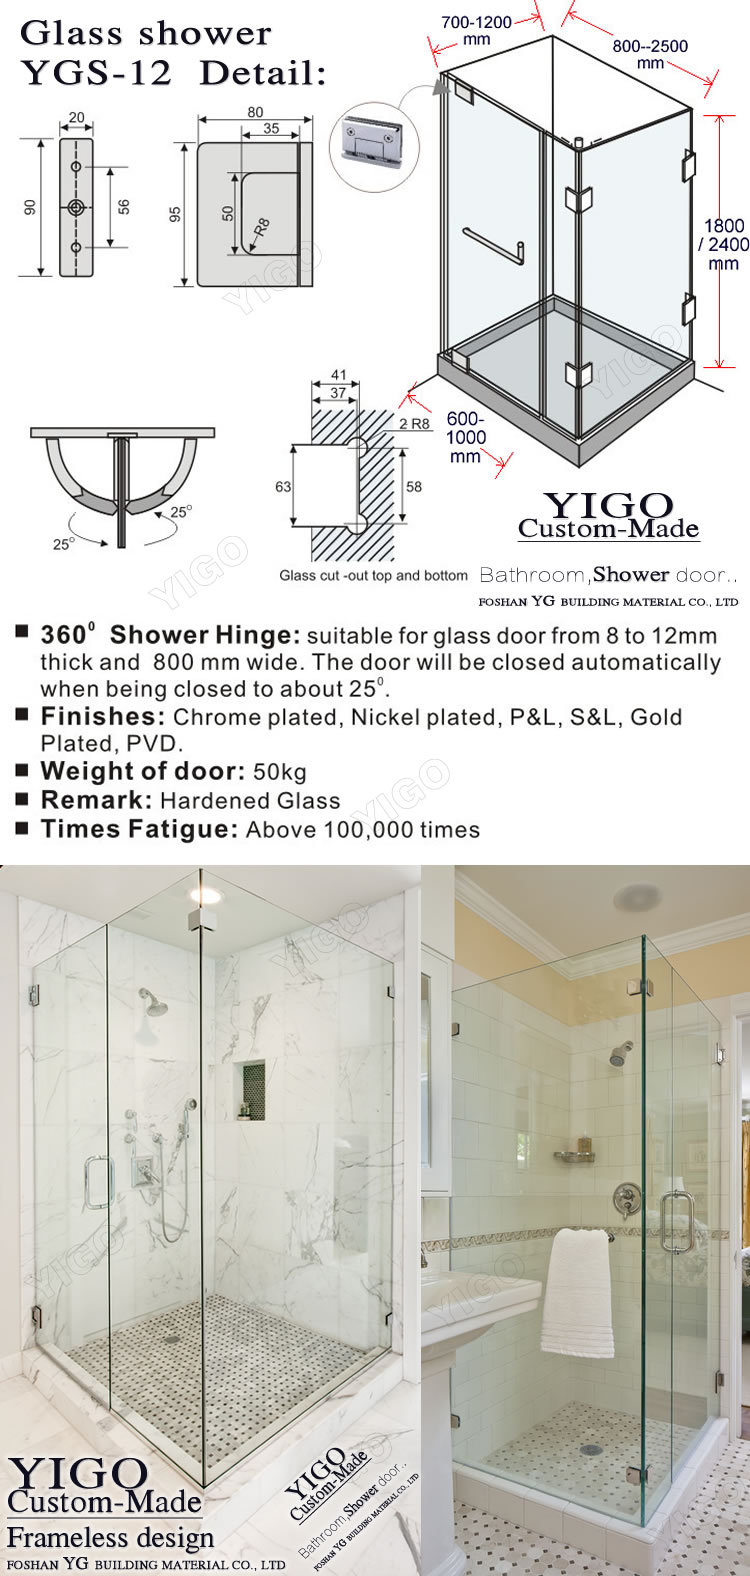 Exelent Bathroom Showers Cubicles Photo - Bathroom Design Ideas ...